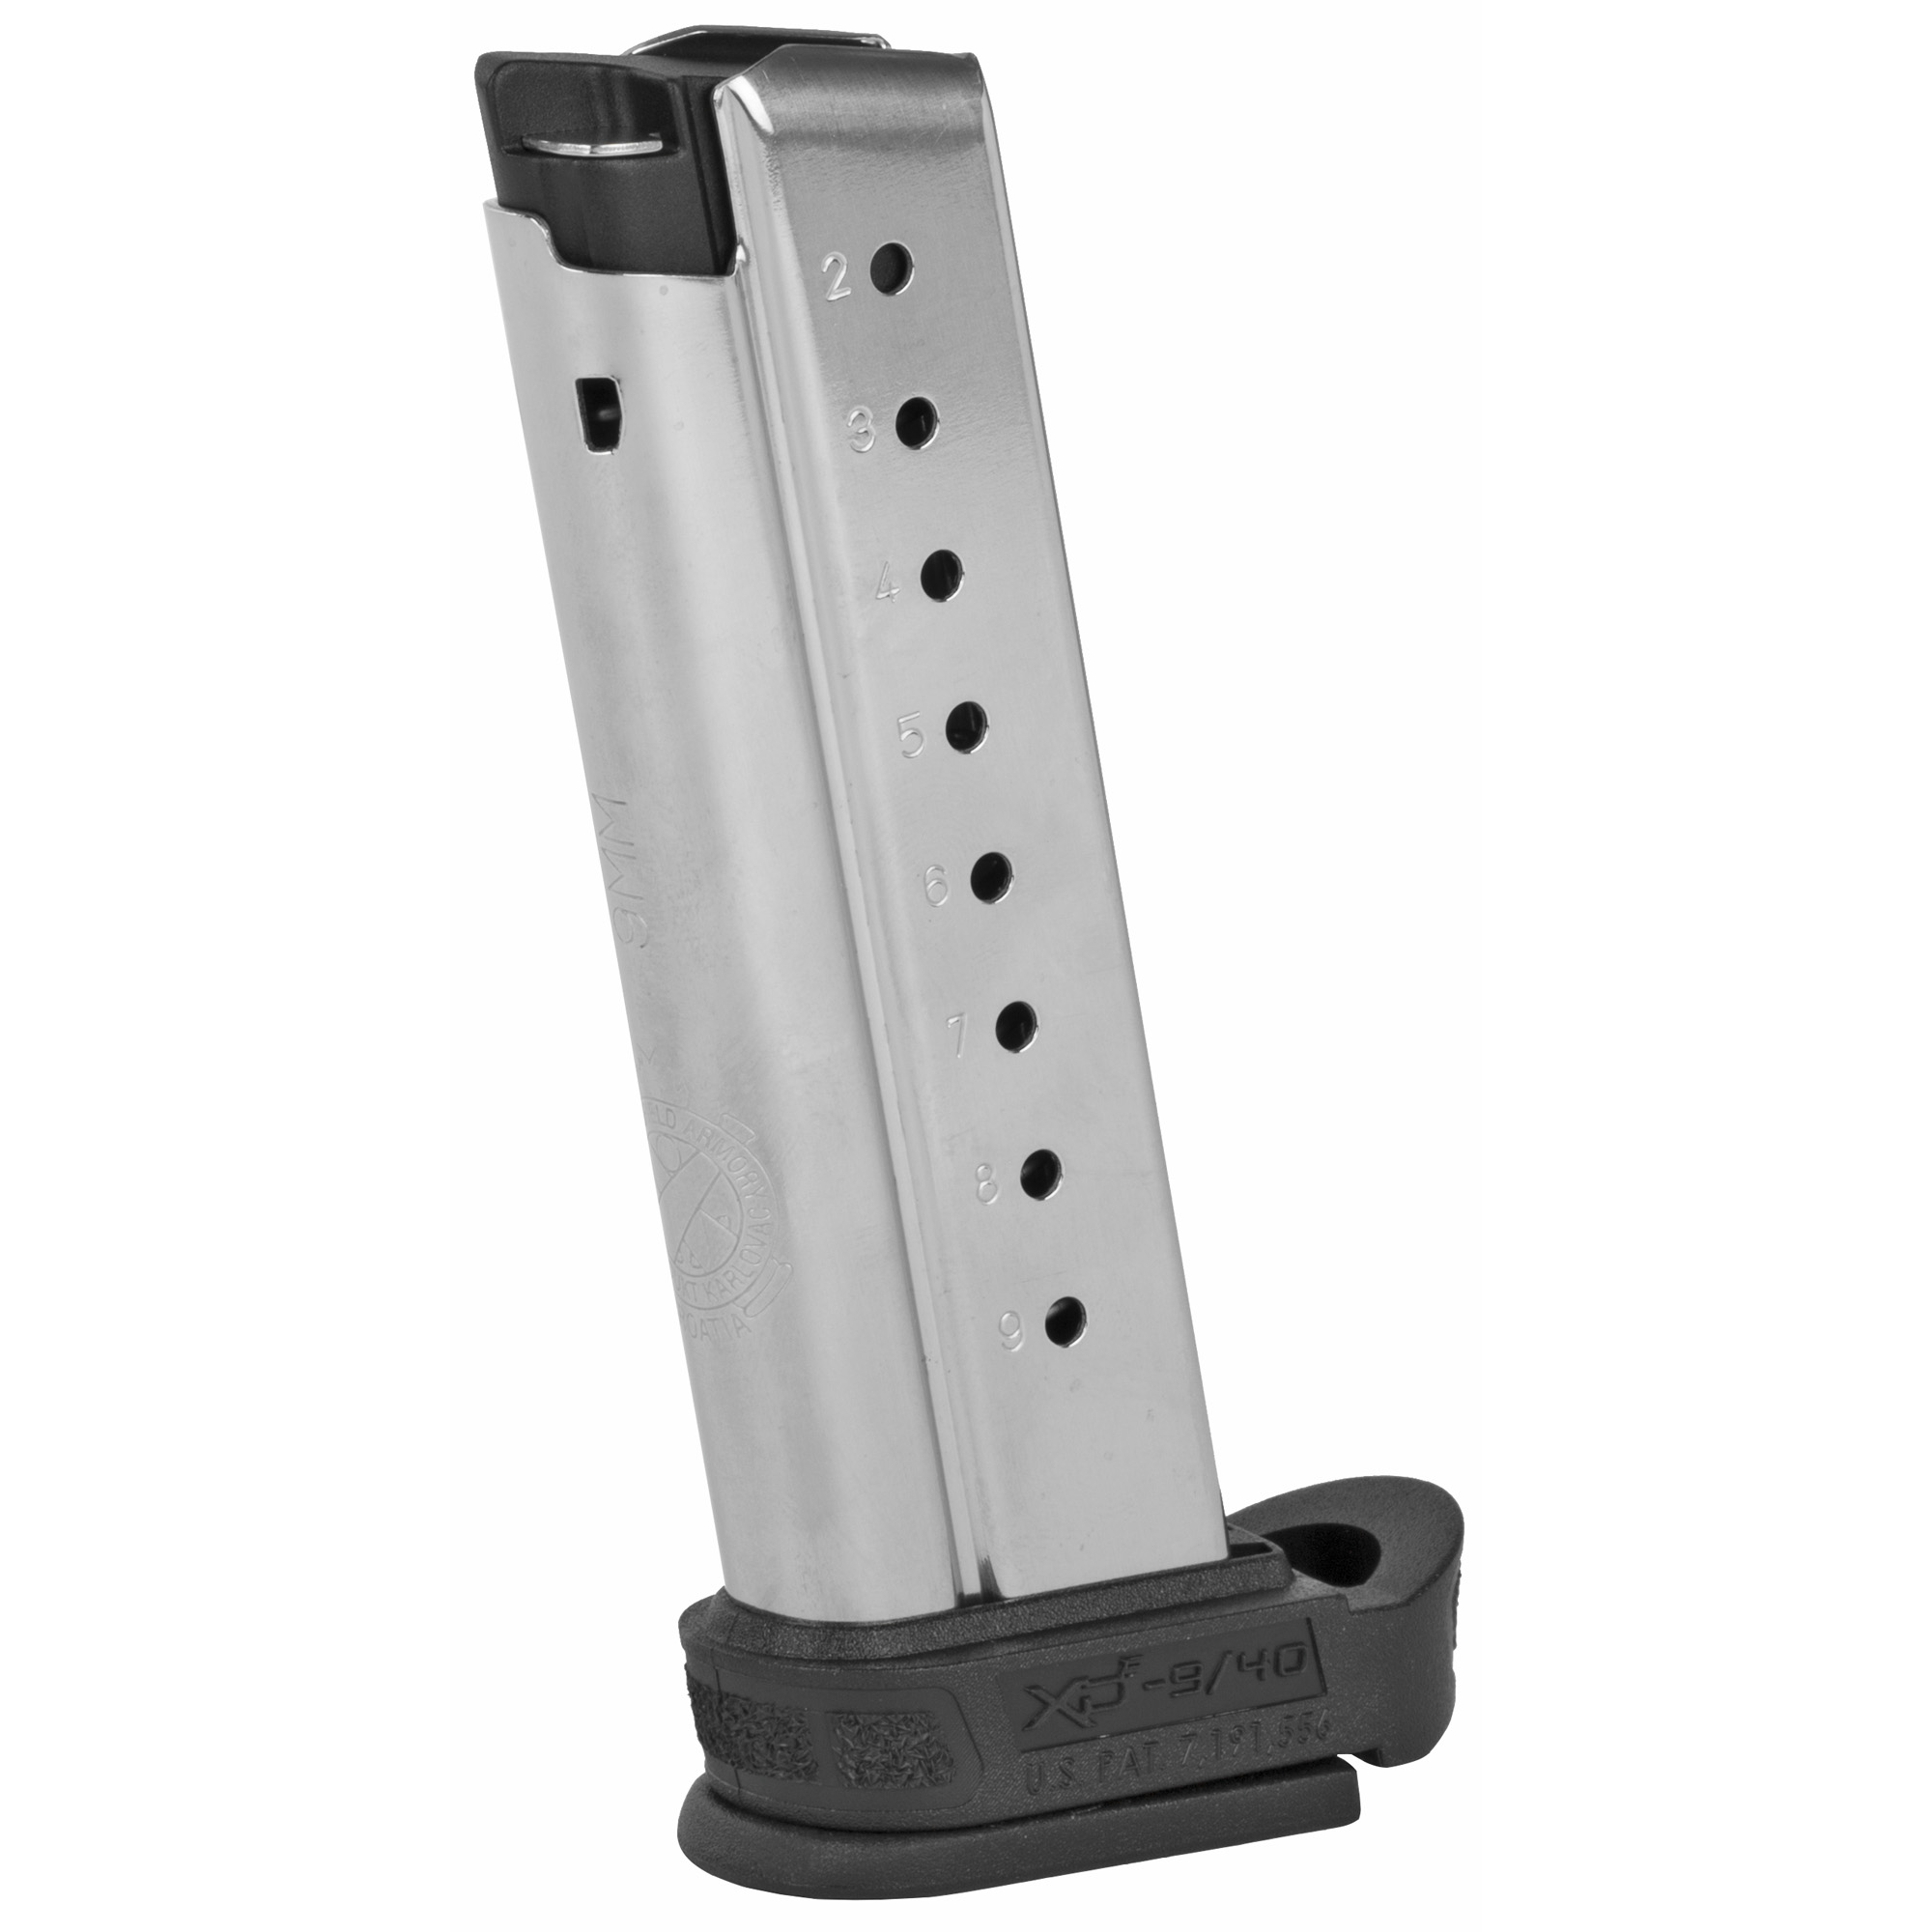 This Springfield Armory factory magazine features high quality components and precise manufacturing that will ensure long-lasting performance and reliability.